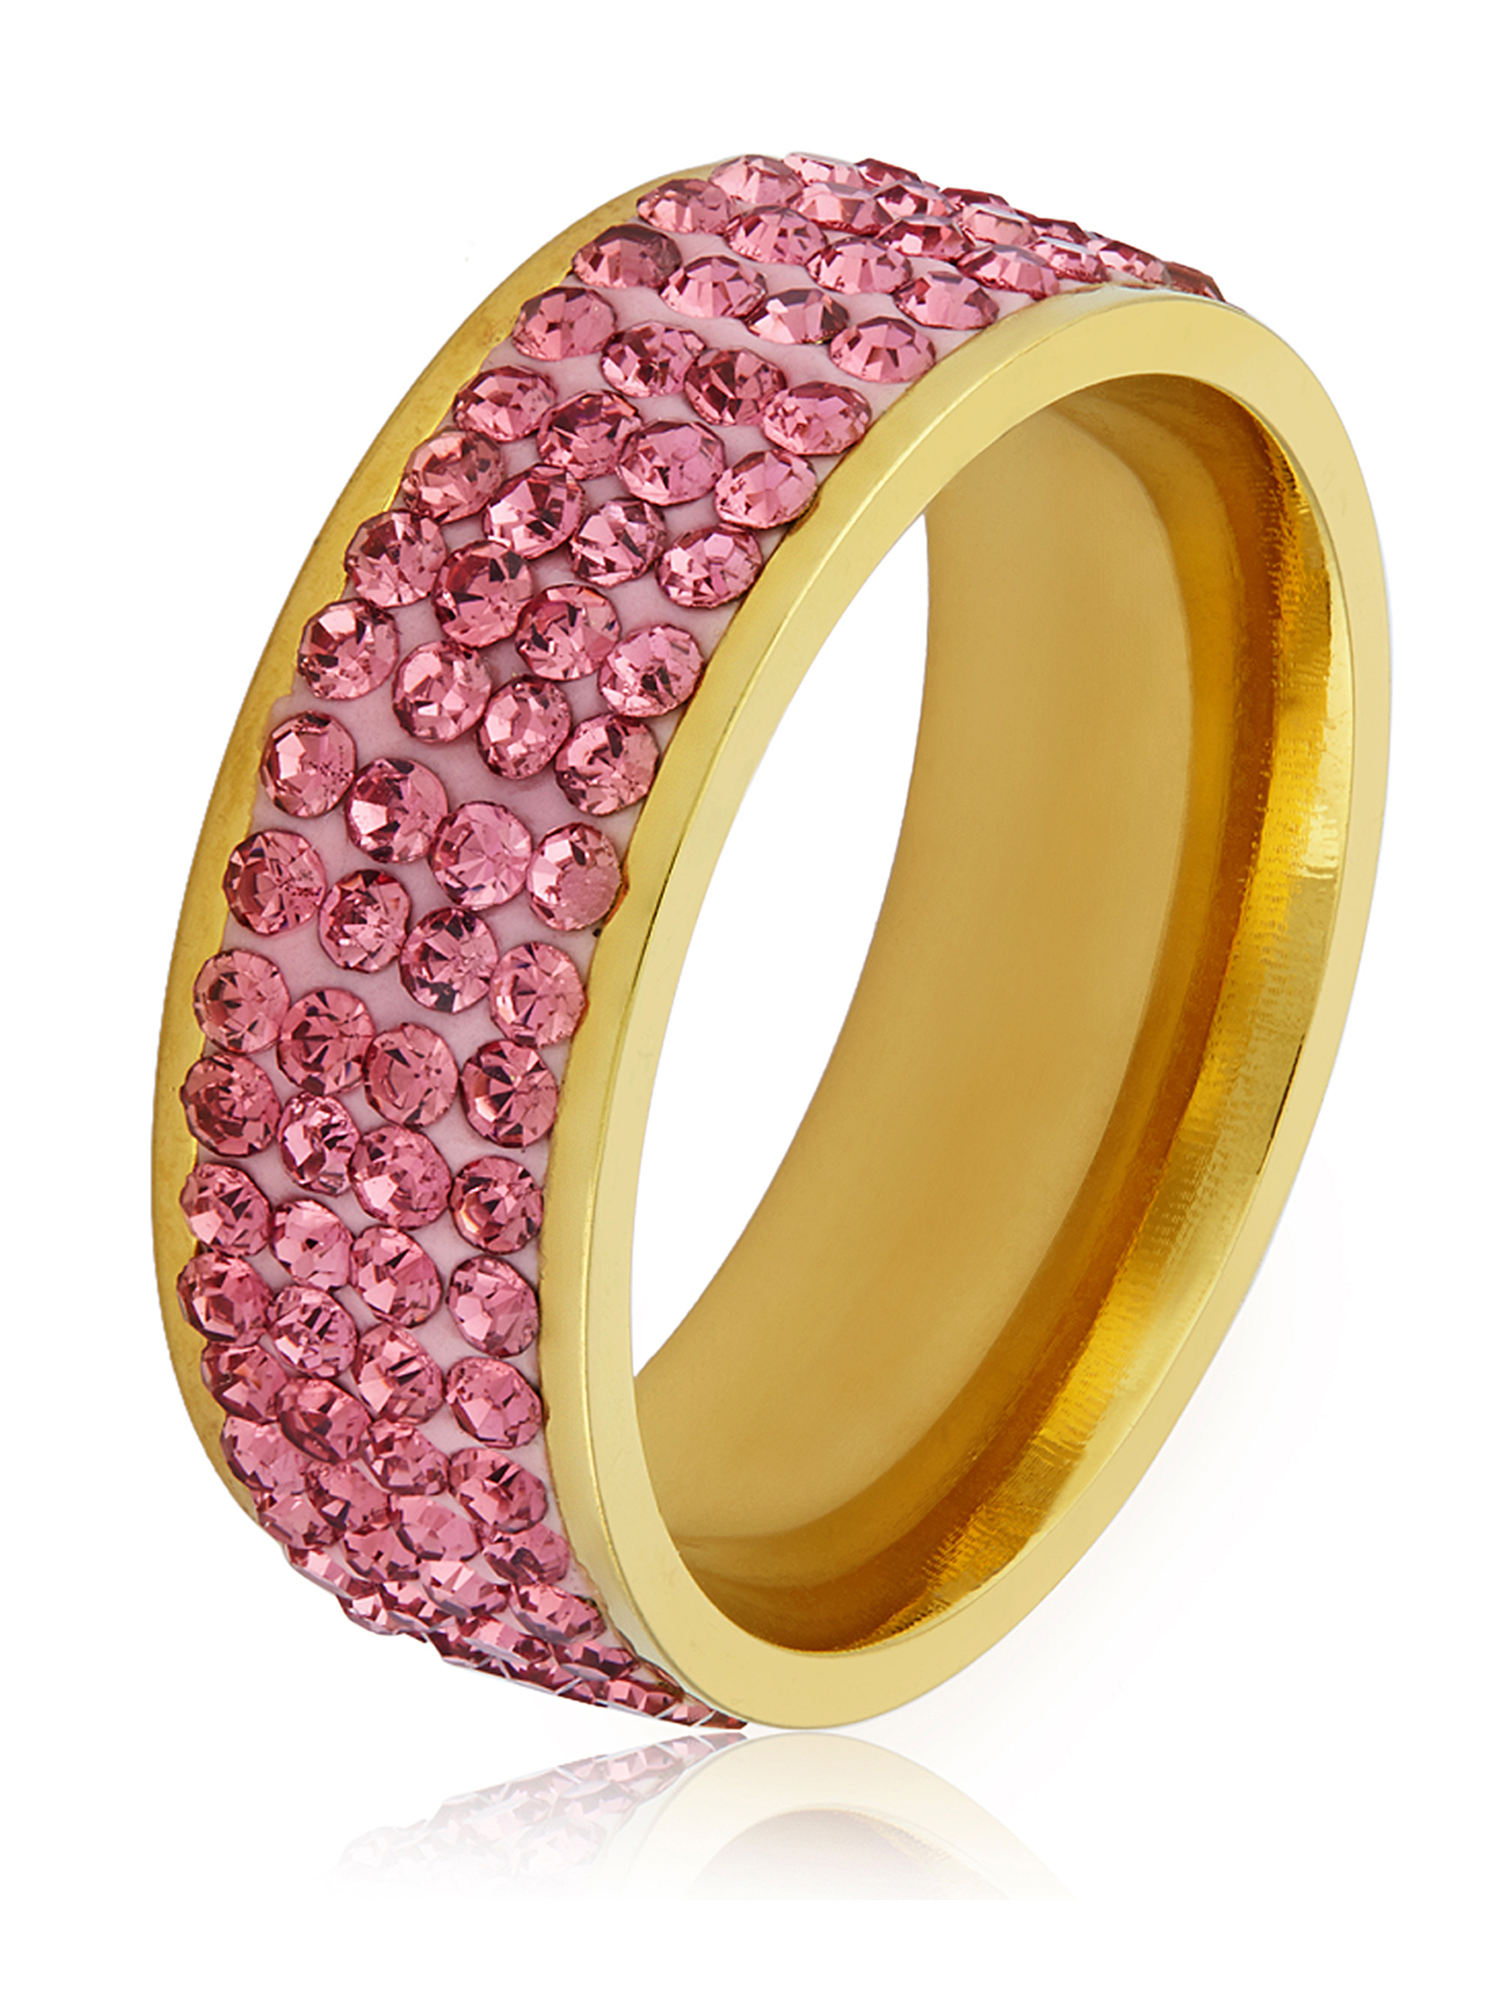 Women's Polished Pink Crystal Stones Gold Plated Stainless Steel Ring (8mm)